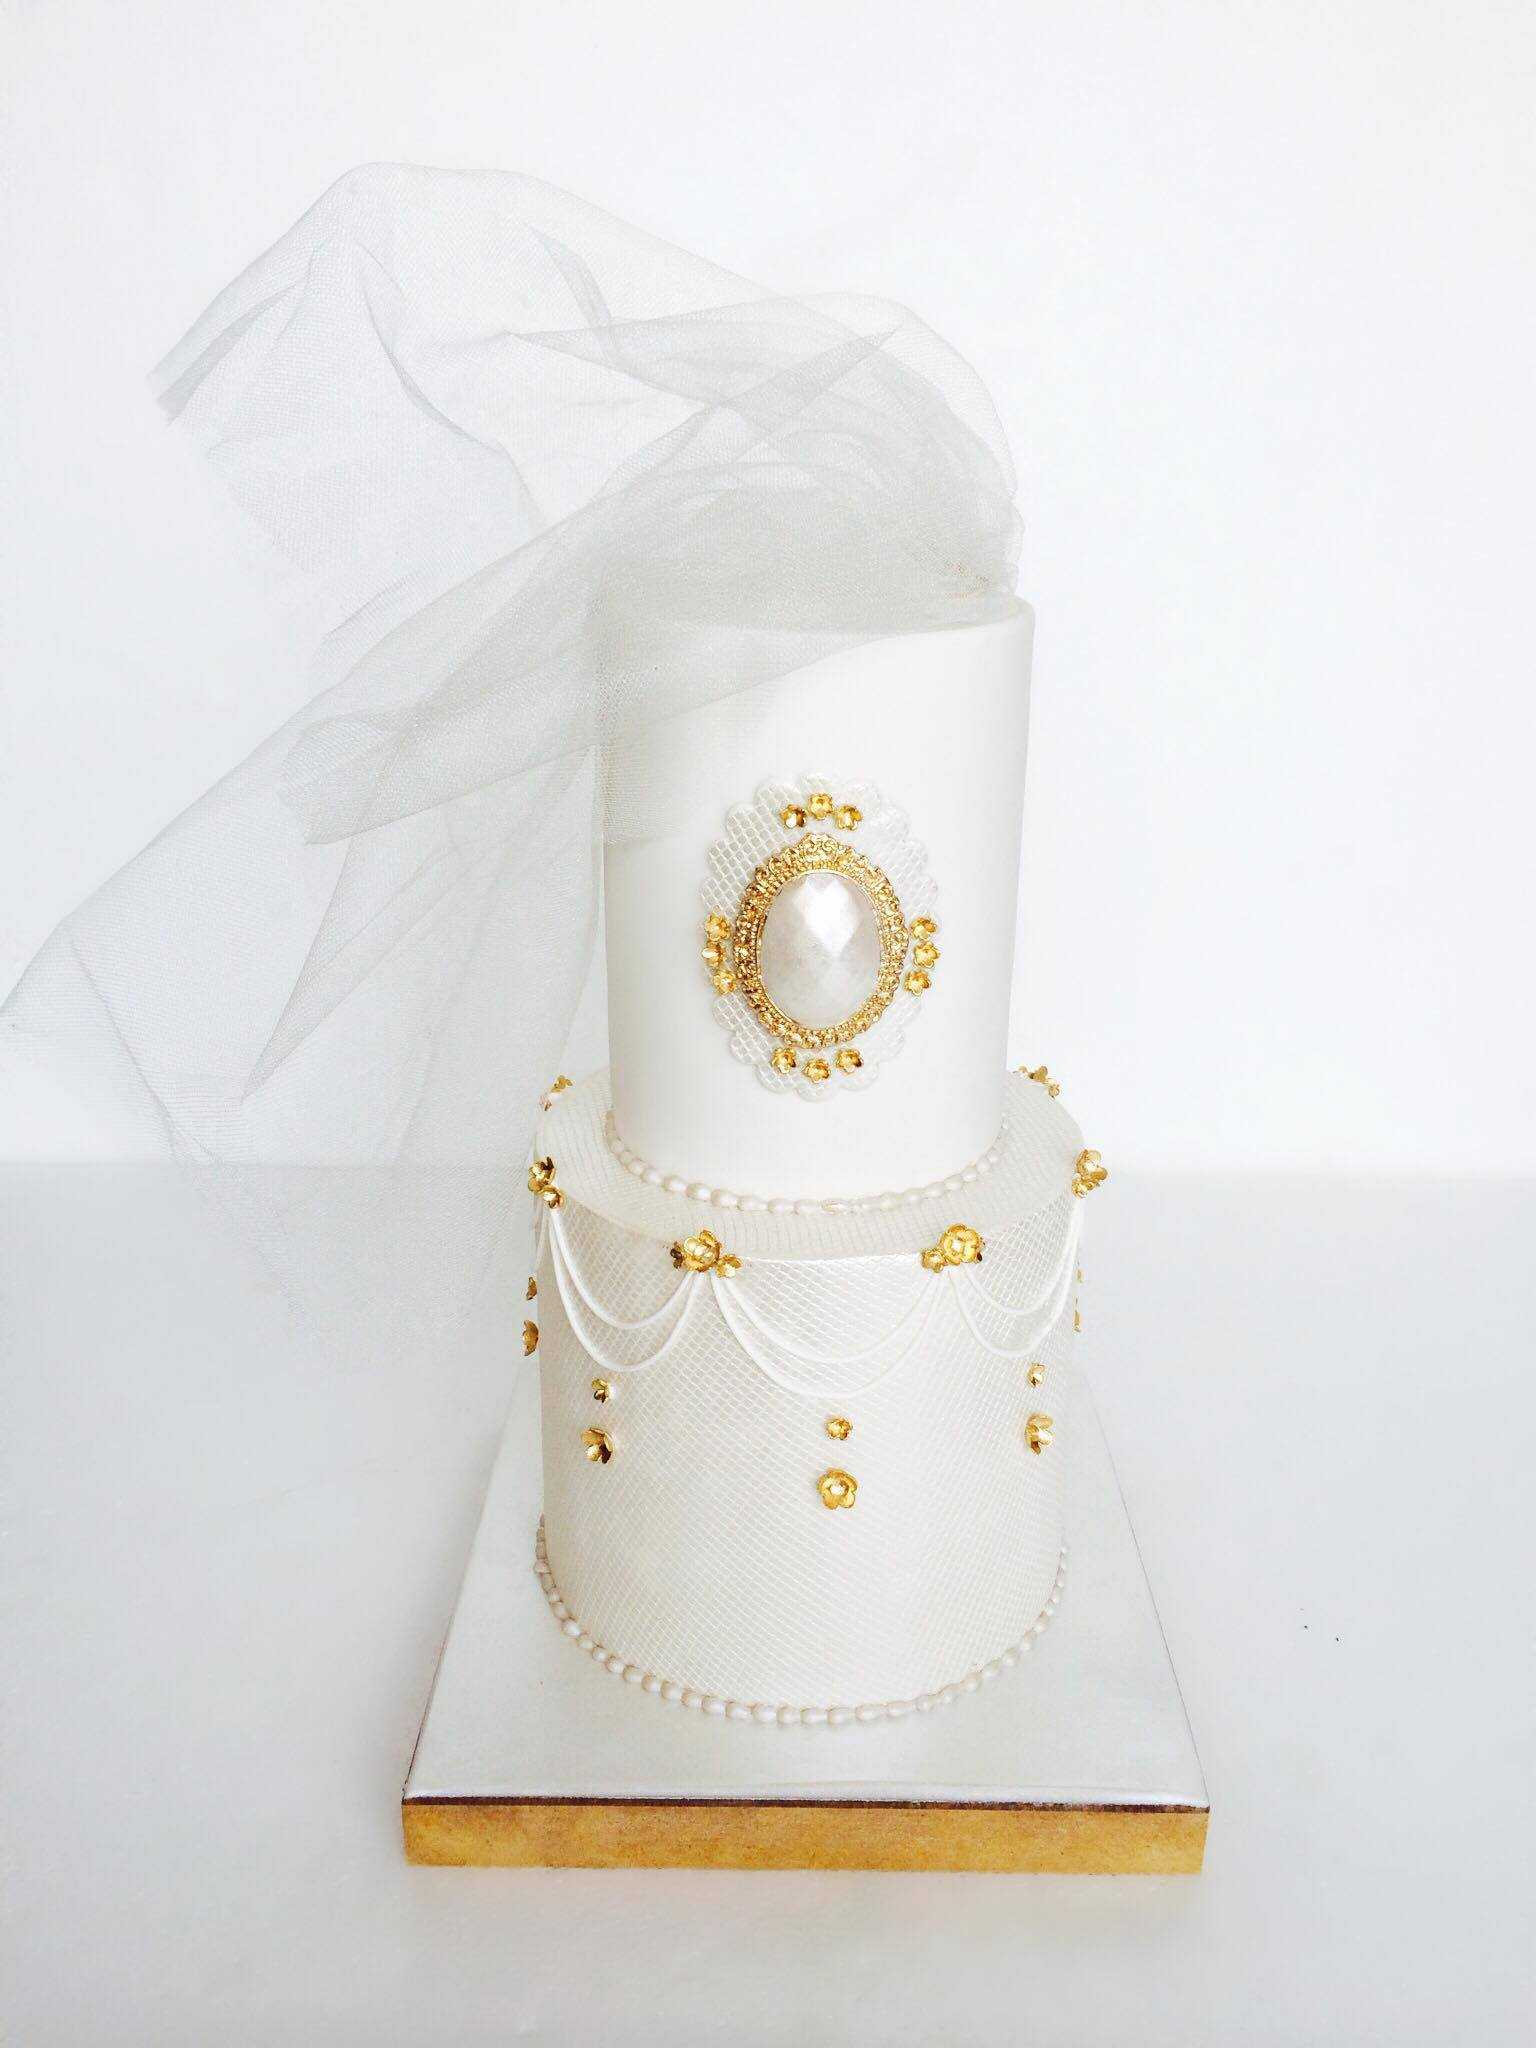 White gatsby inspired fondant wedding cake